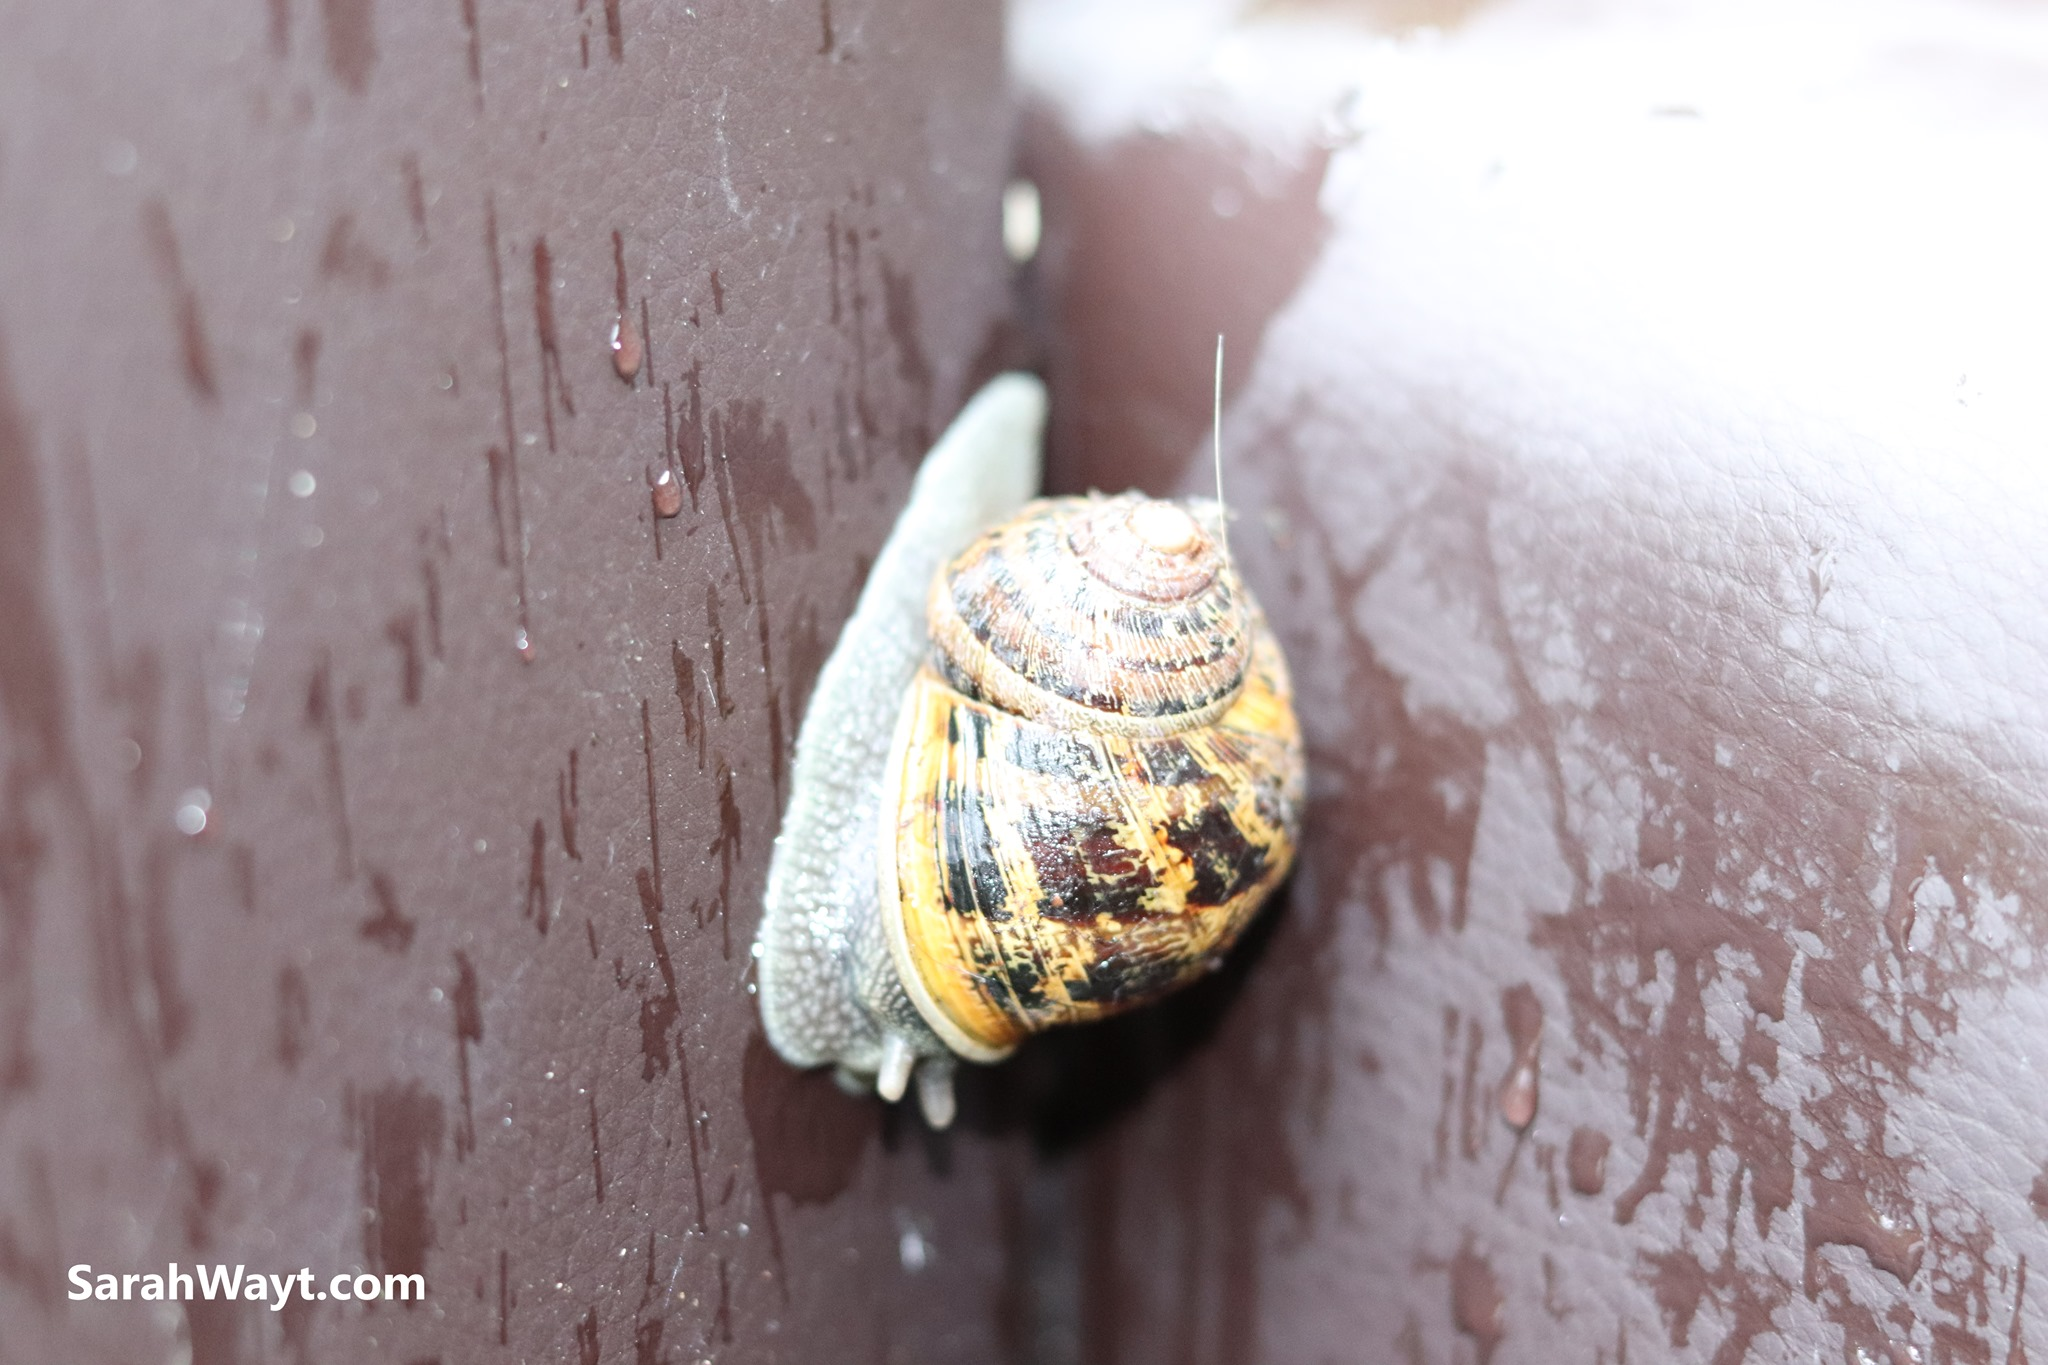 The lowly garden snail that I had a beautiful connection with even though he ate my cucumber plane. This is about loving all life